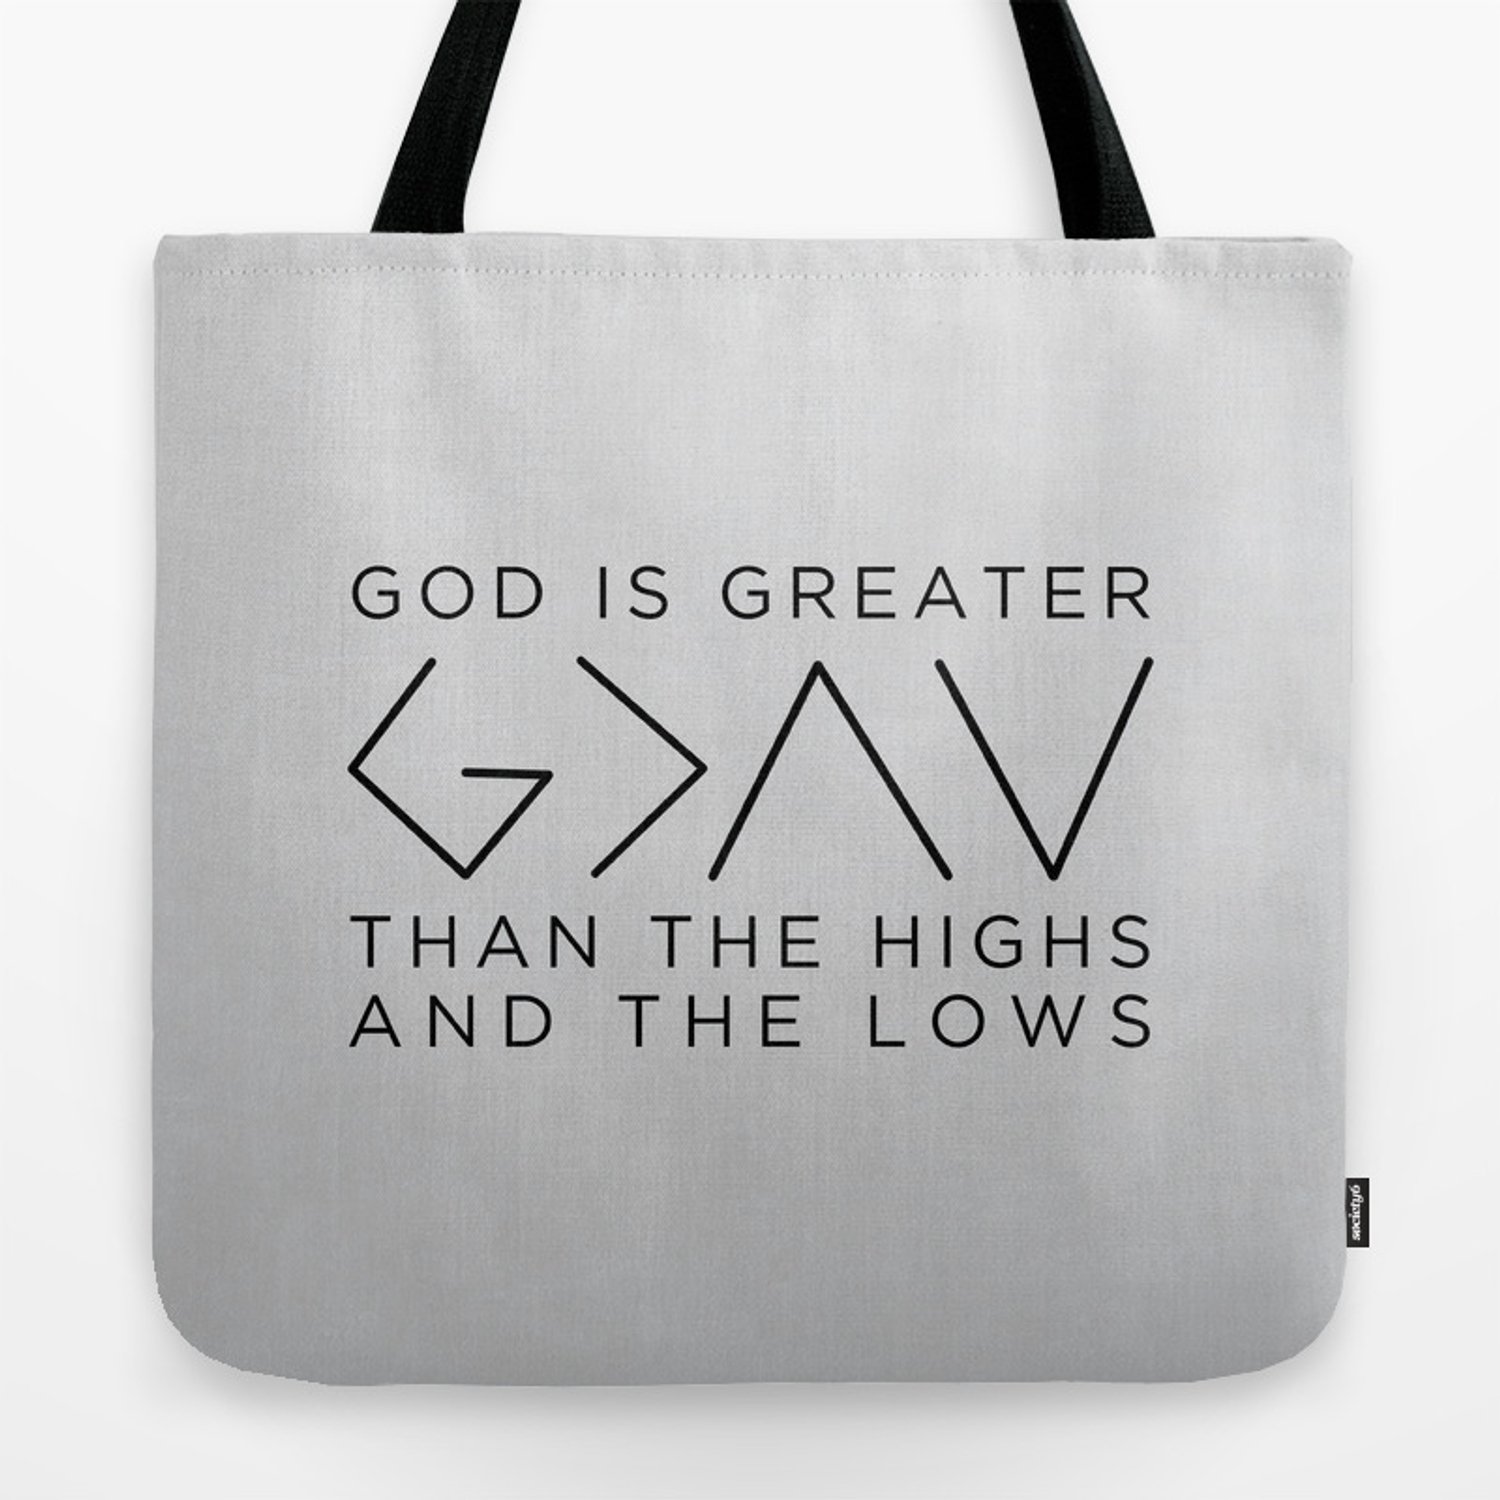 f514ecfdd42 Nick Jonas God Is Greater Than The Highs & The Lows Tote Bag by clkelley |  Society6